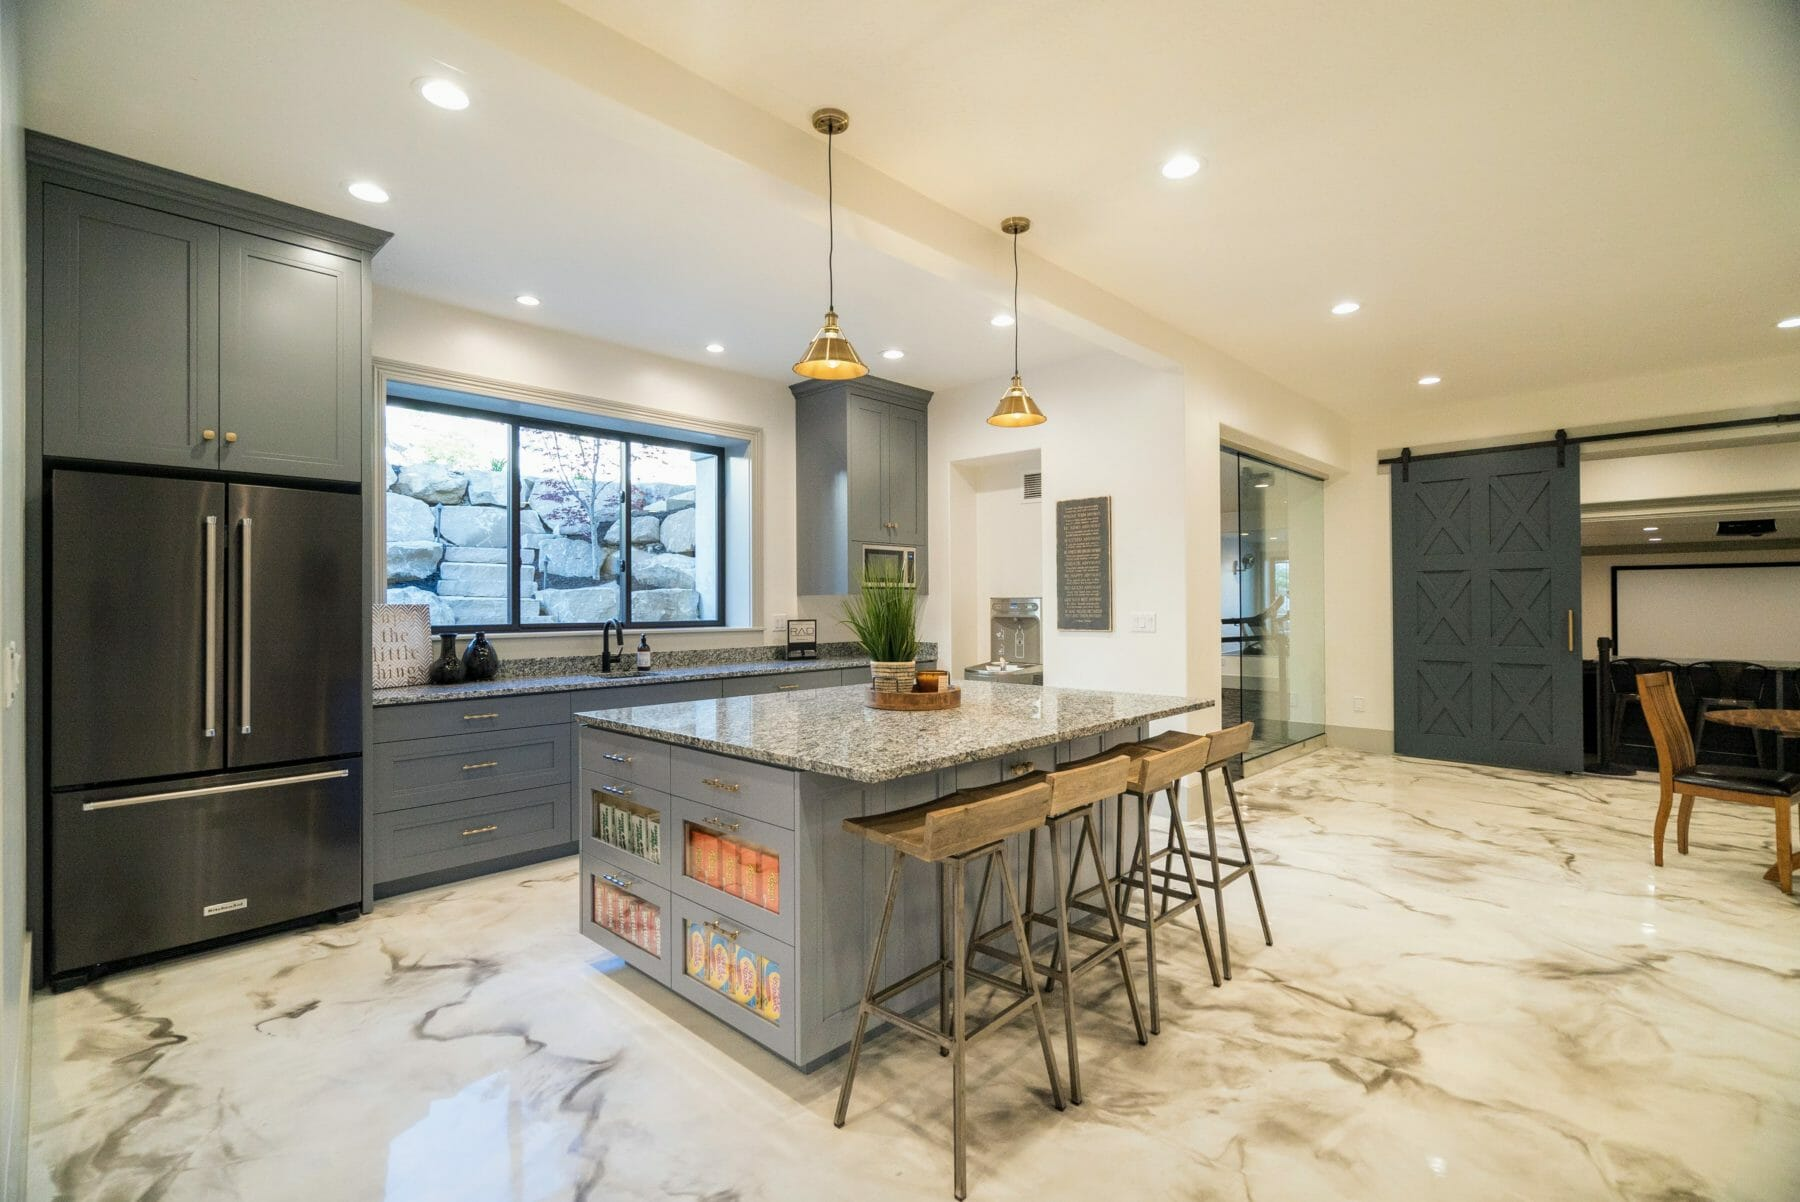 Utah Valley Parade of Homes | Utah